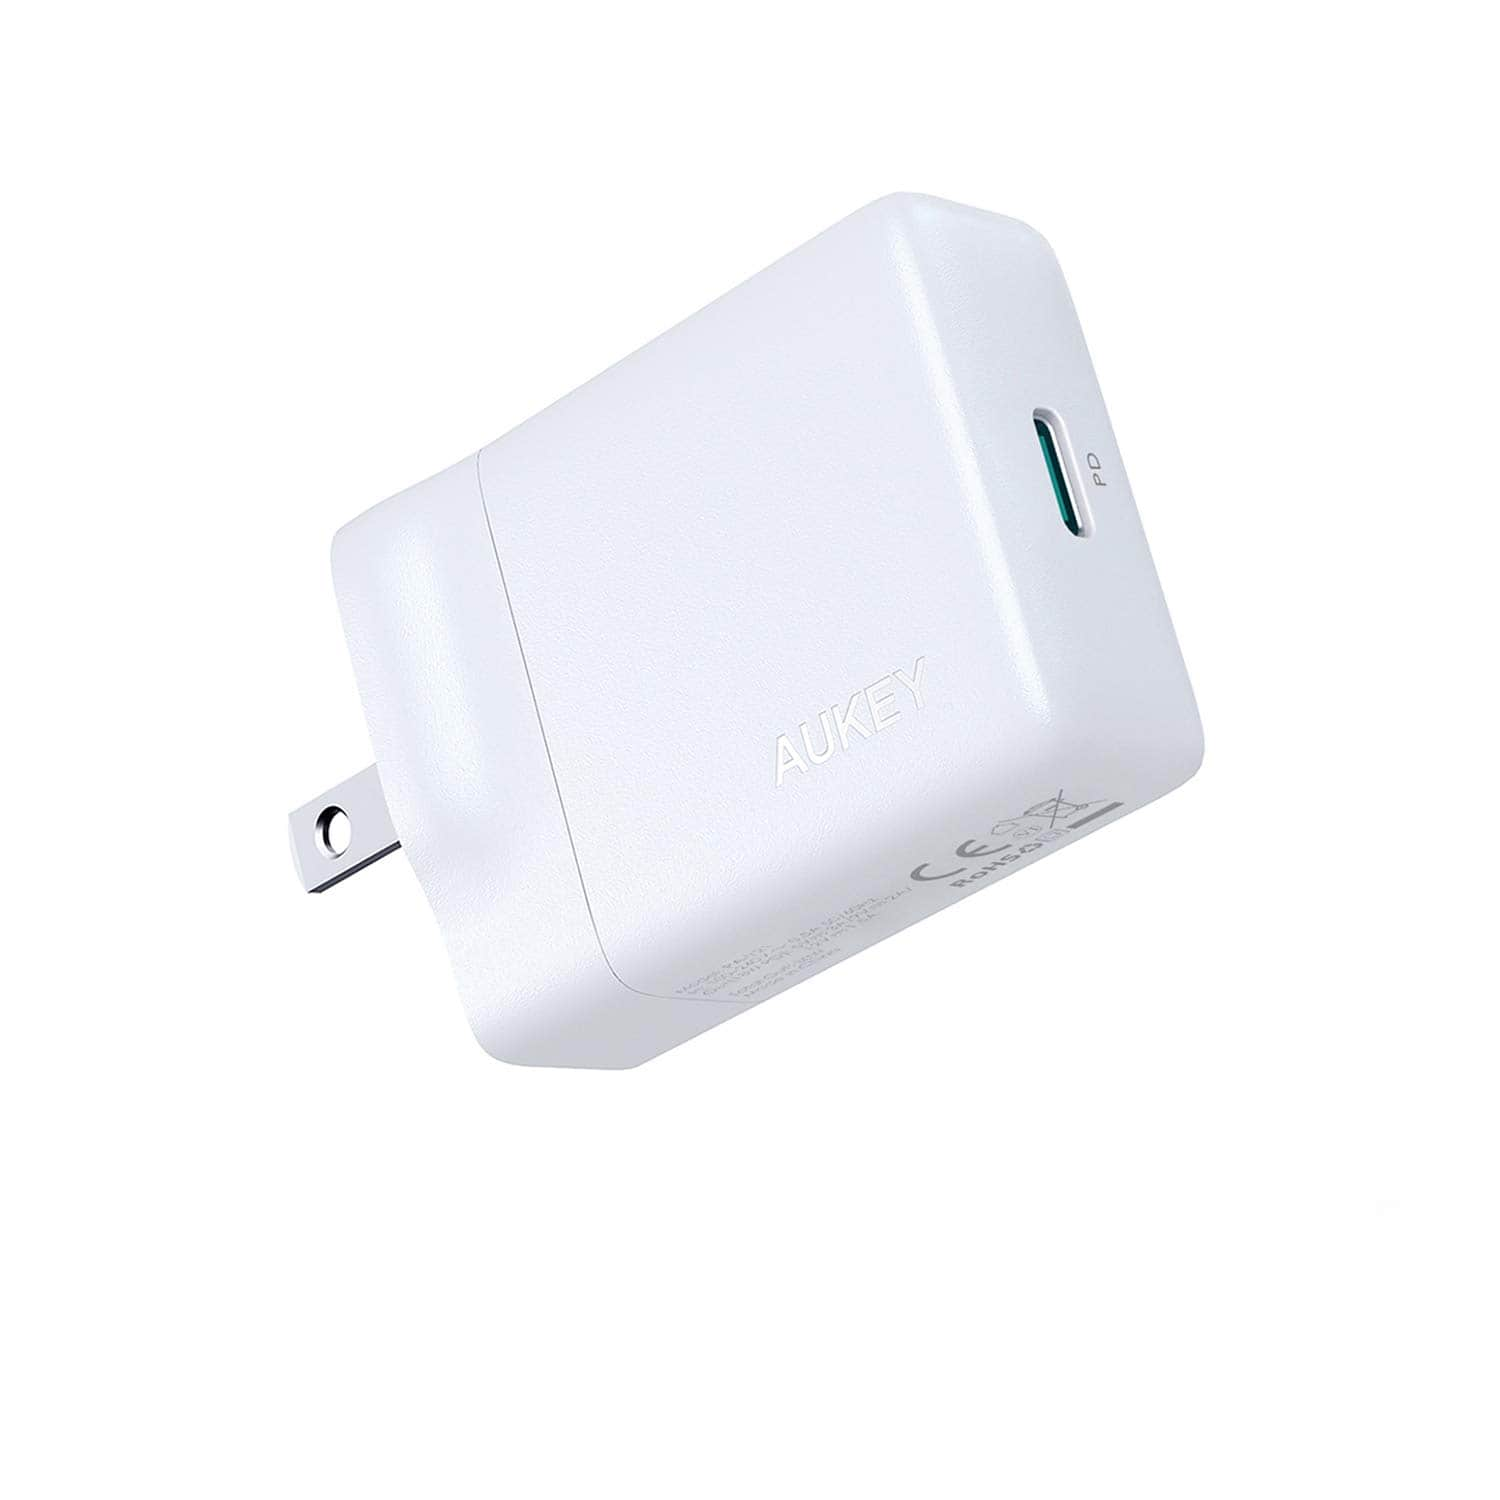 AUKEY USB-C Charger with 27W Power Delivery $13 at amazon